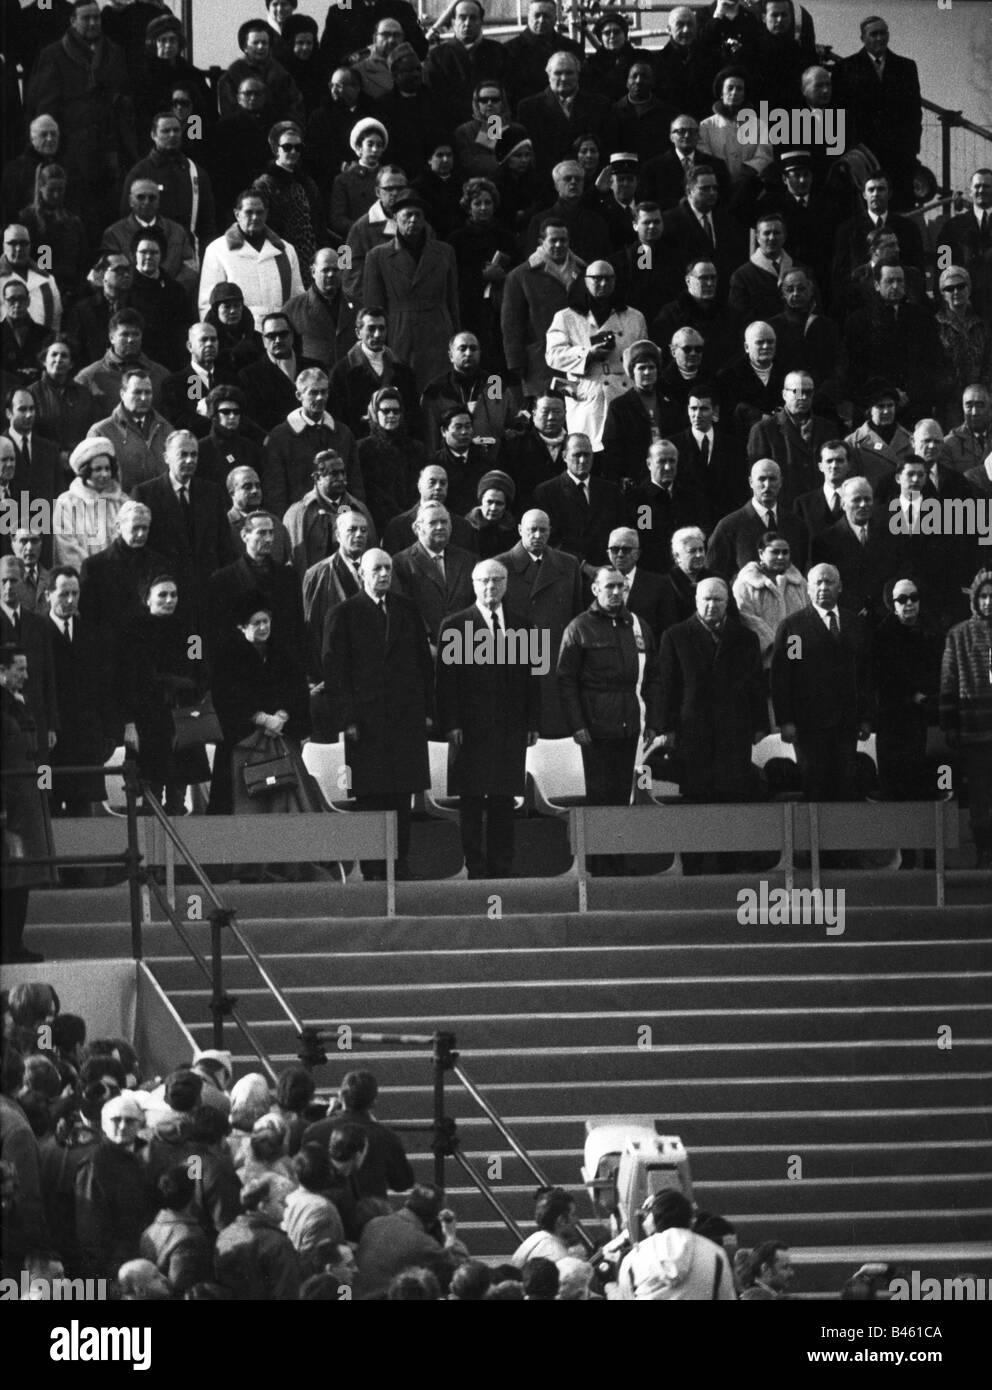 sport, Olympic Games, Grenoble, 6.2.1968 - 18.23.1968, opening, guests of honour during the Olympic Oath, 6.2.1968, - Stock Image